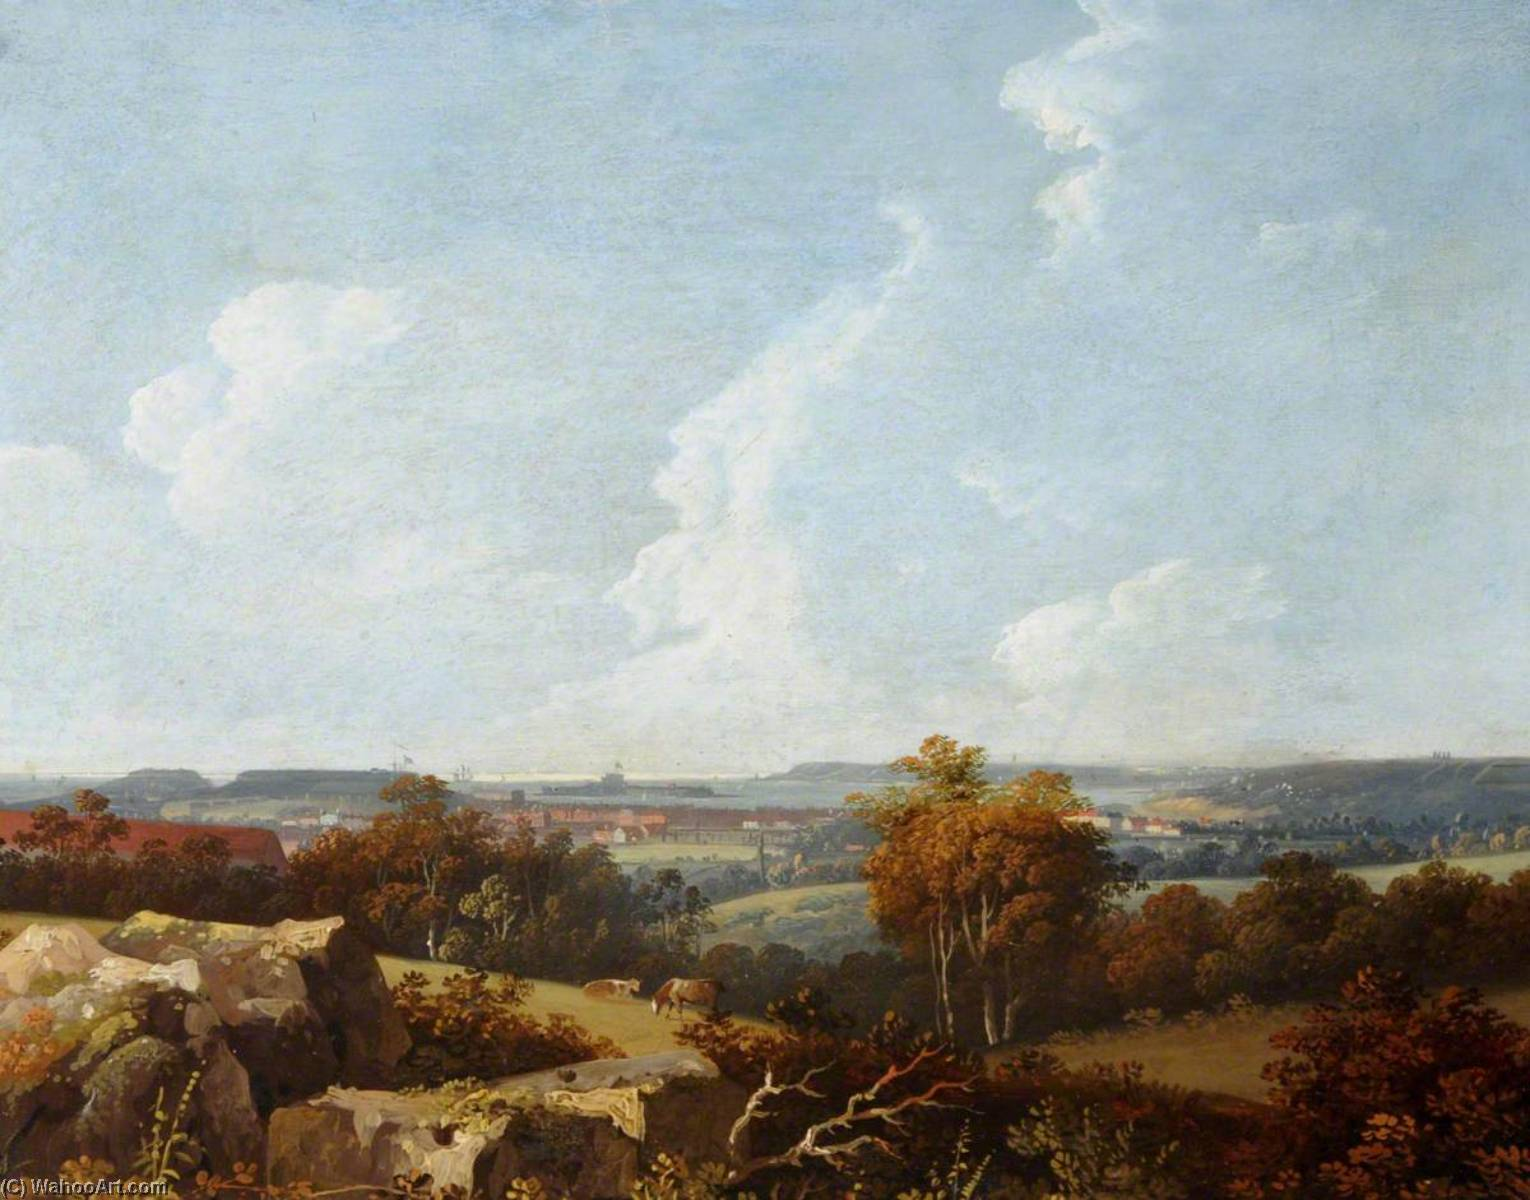 View of Fort Regent, Elizabeth Castle and Noirmont, 1814 by John Tobias Young | Famous Paintings Reproductions | WahooArt.com